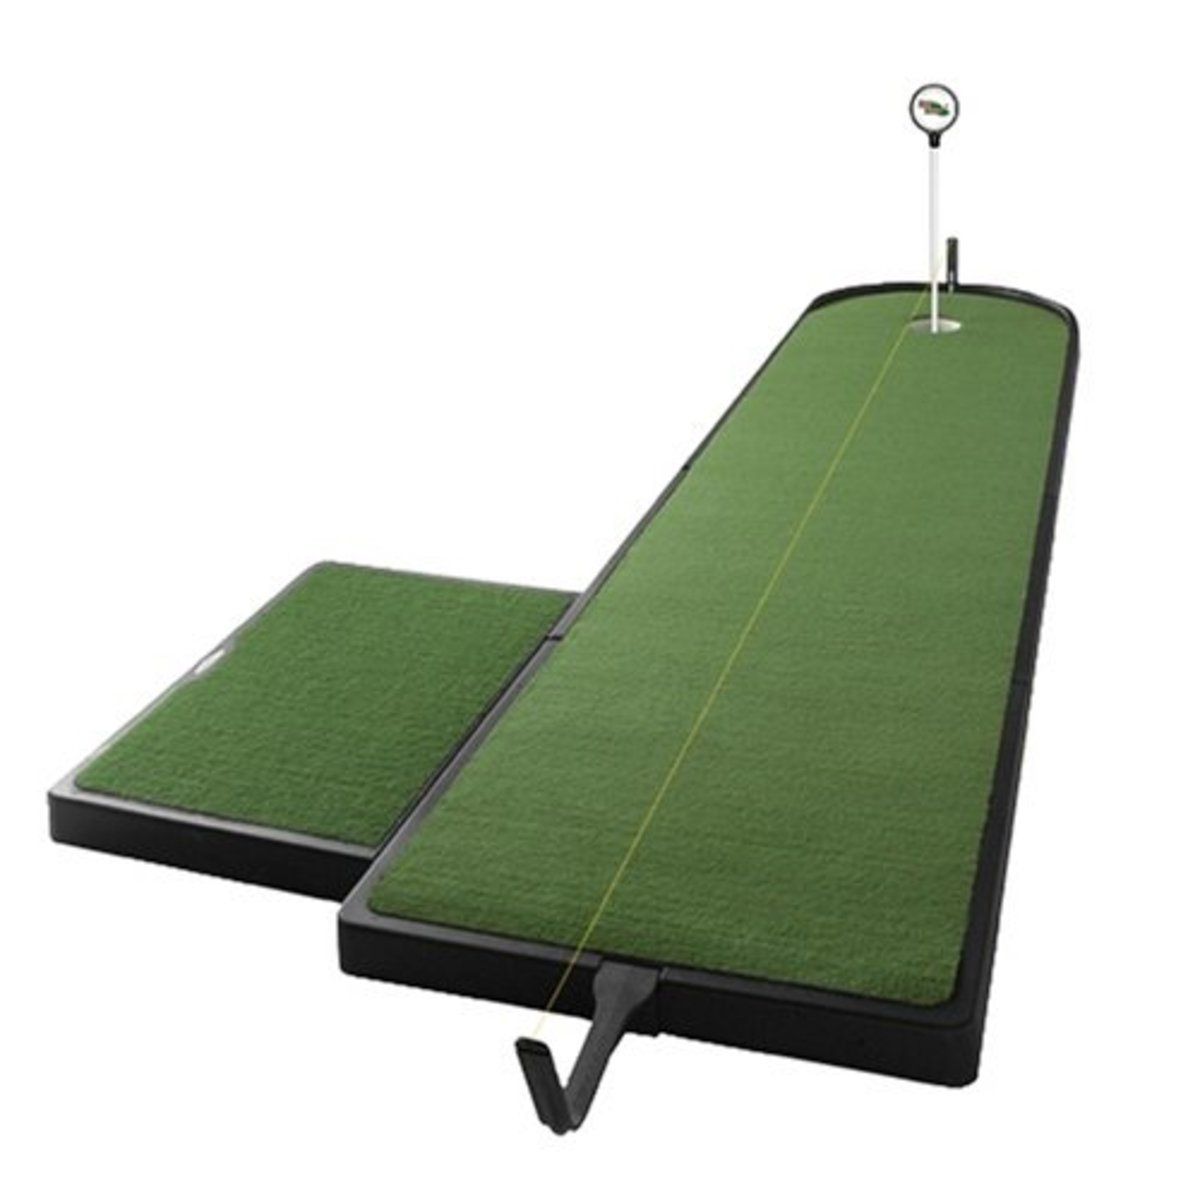 Find The Best Indoor Putting Green For Your Home | Top 4 Review ...